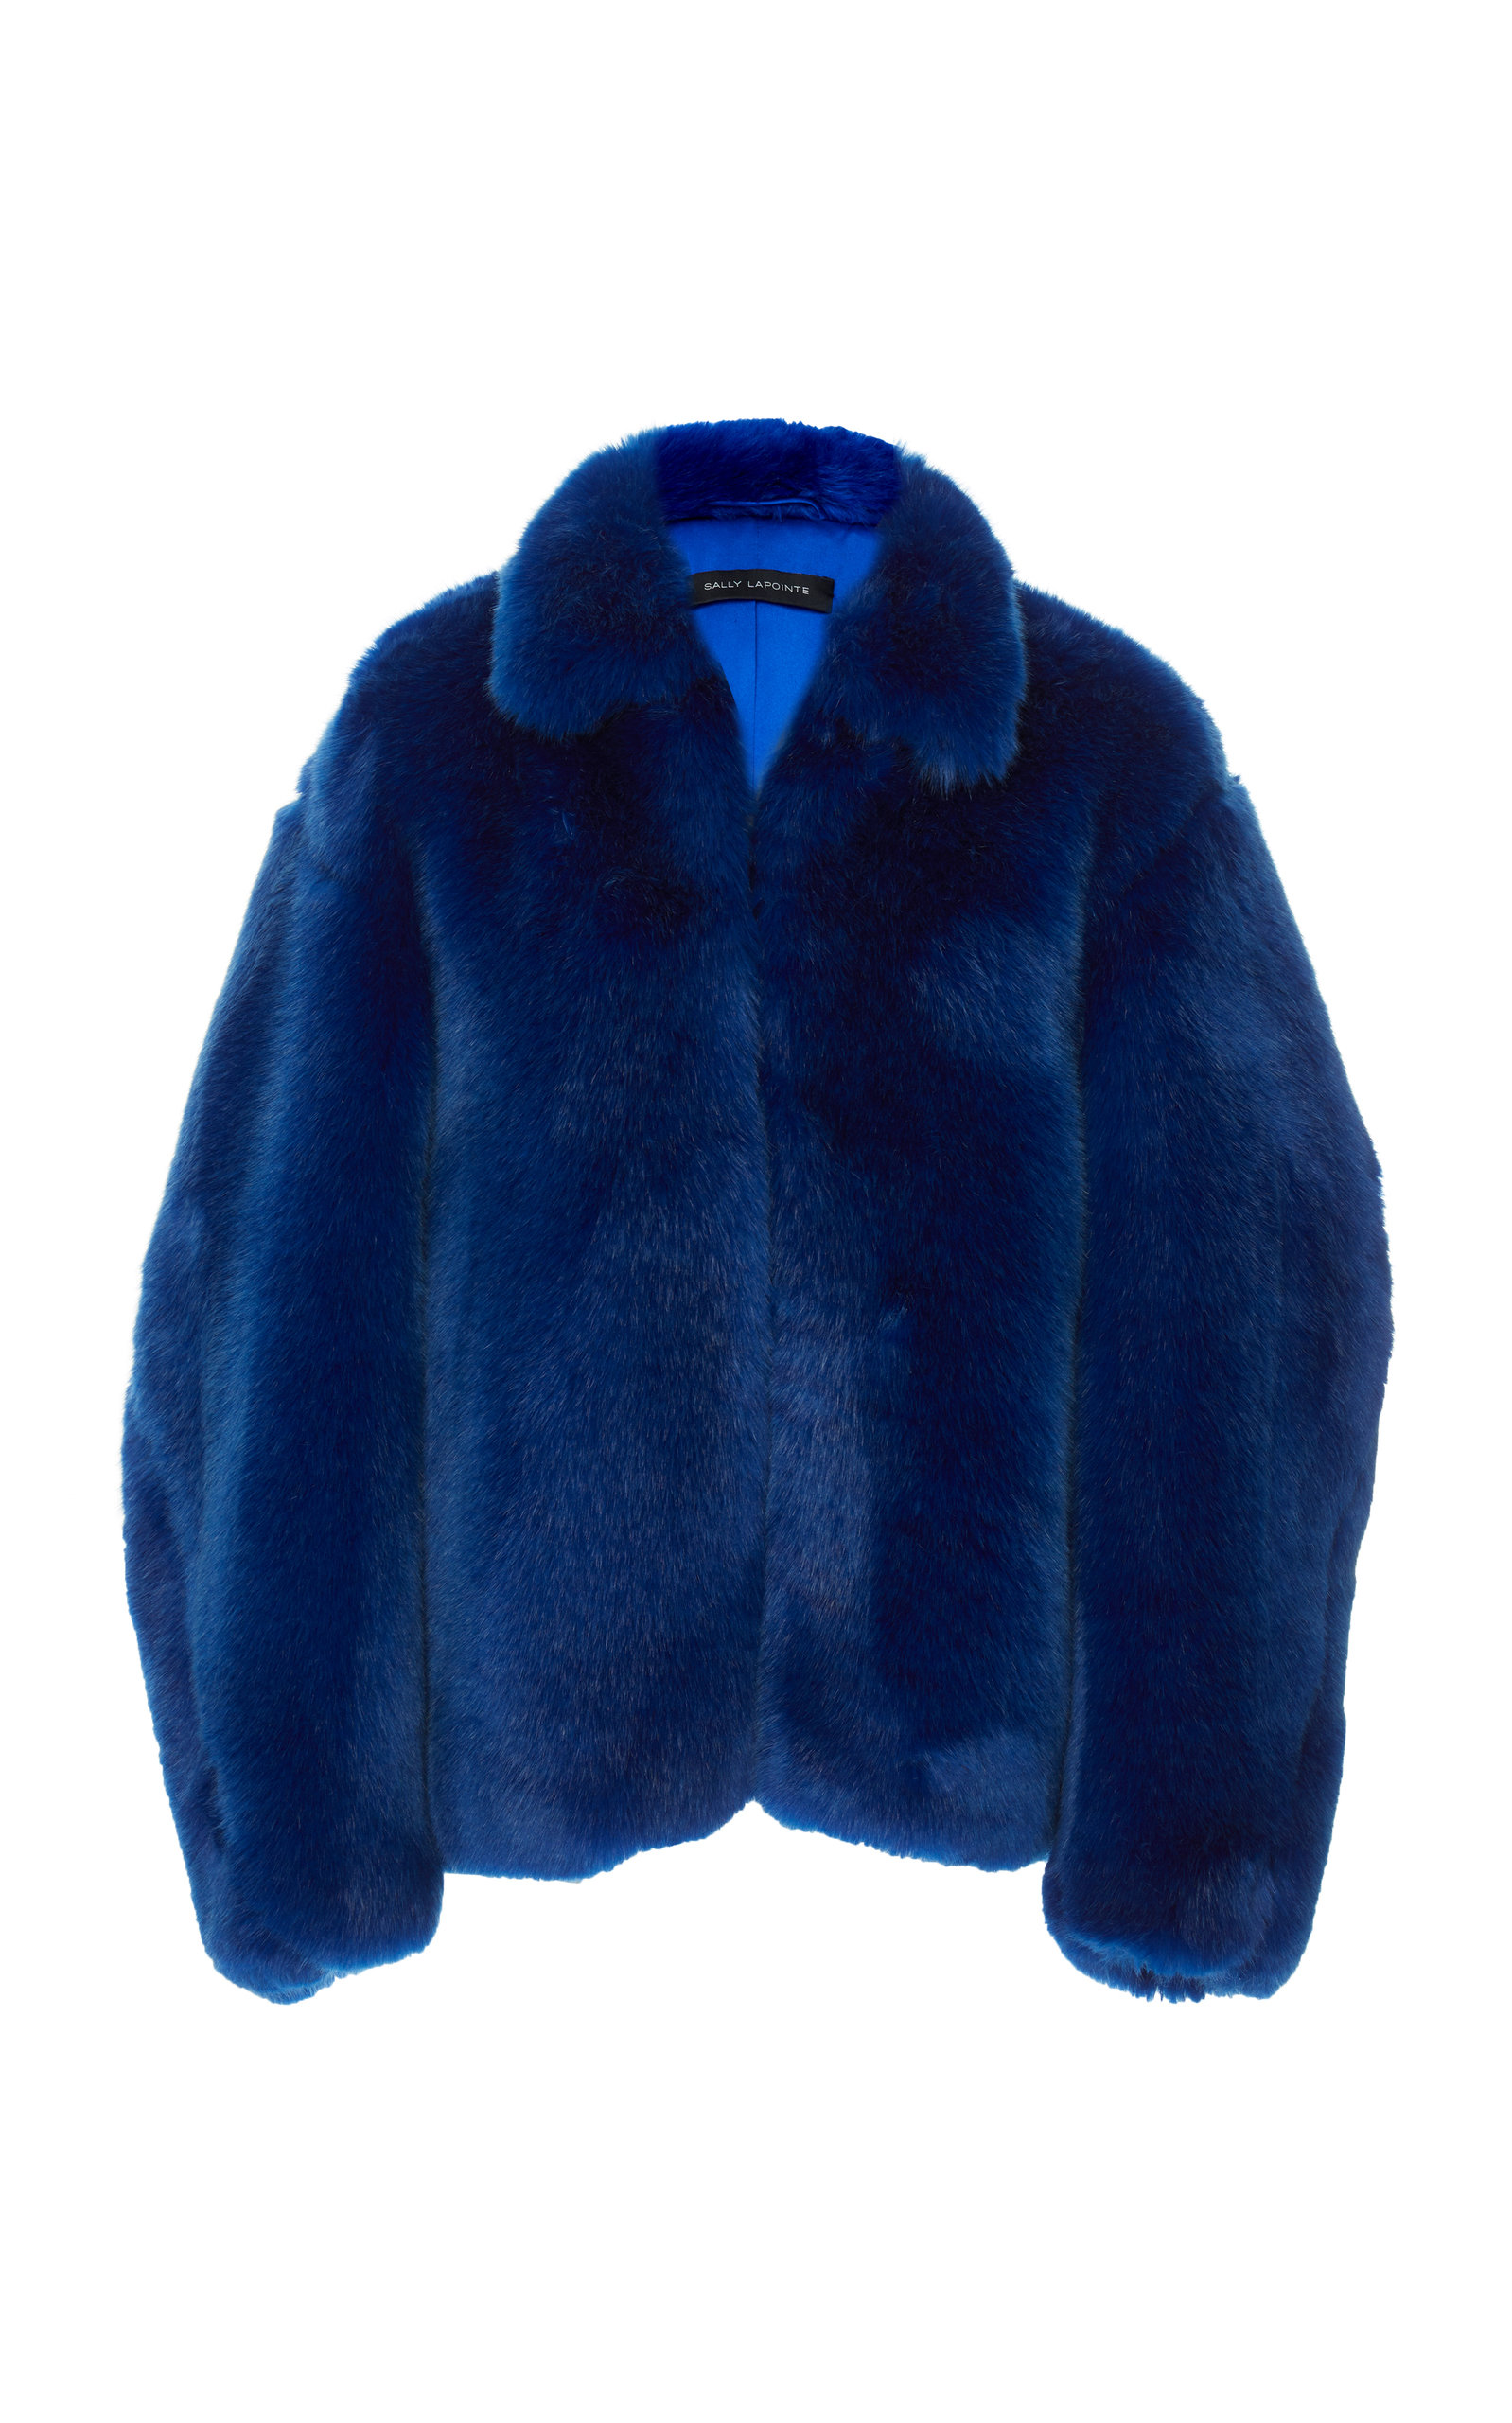 SALLY LAPOINTE Oversized Faux Fur Jacket in Cobalt Blue